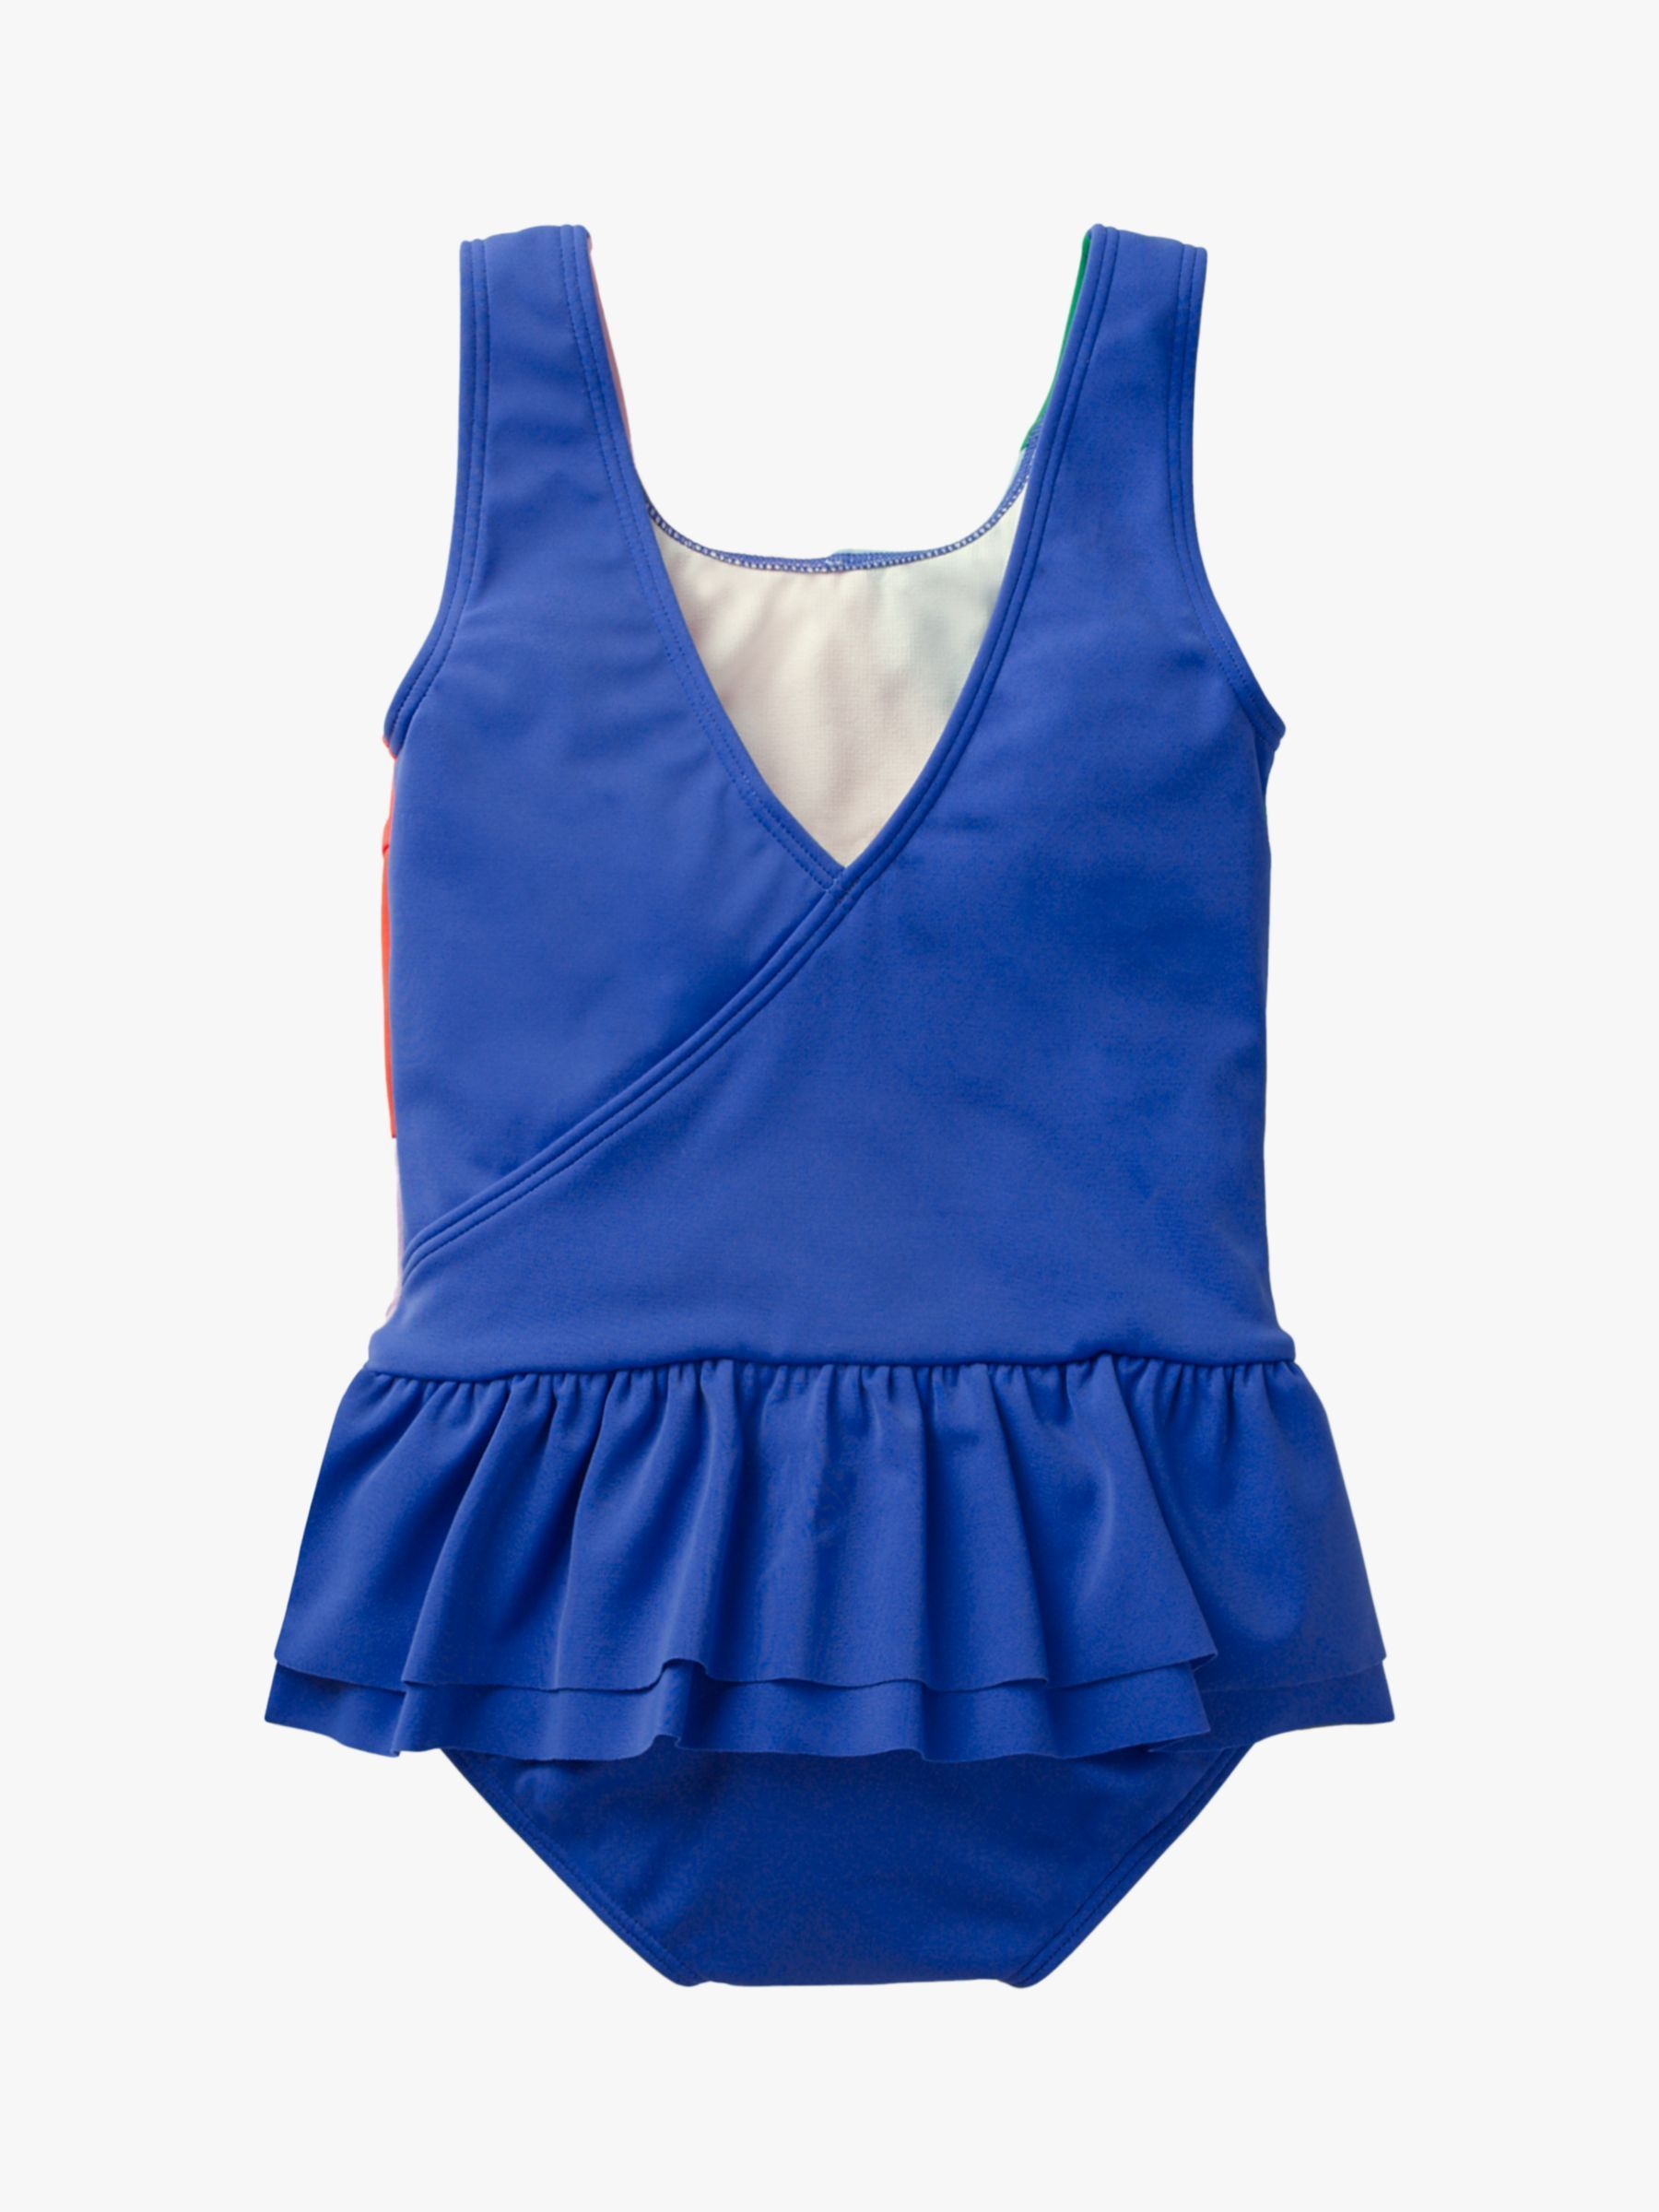 Mini Boden Girls' Applique Rainbow Swimsuit, Blue/Multi  You are in the right place about Kids Clothing autumn   Here we offer you the most beautiful pictures about the  Kids Clothing patterns  you are looking for. When you examine the Mini Boden G... #applique #Babies clothes #Baby girl clothing #BlueMulti #boden #Children clothes #Girl clothing #Girls #Gymboree #Kid styles #Kids fashion #Mini #Mini boden #multi #rainbow #swimsuit #Toddler boys clothes #Toddler girl clothing #Toddler girls